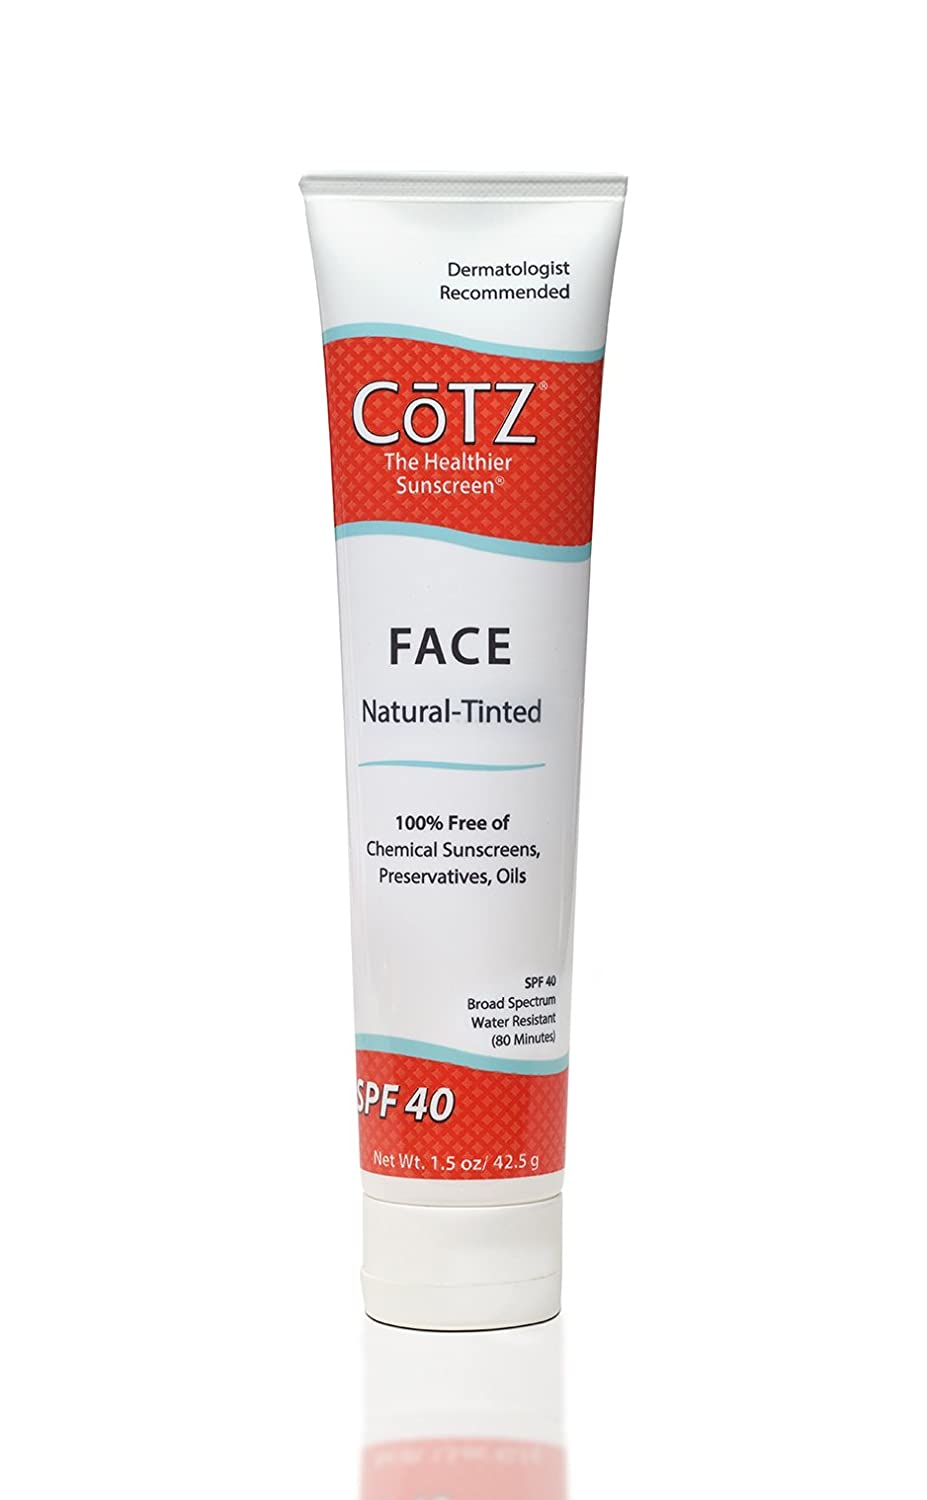 Cotz Face Natural Skin Tone Spf 40, 1.5 Ounce by Co Tz